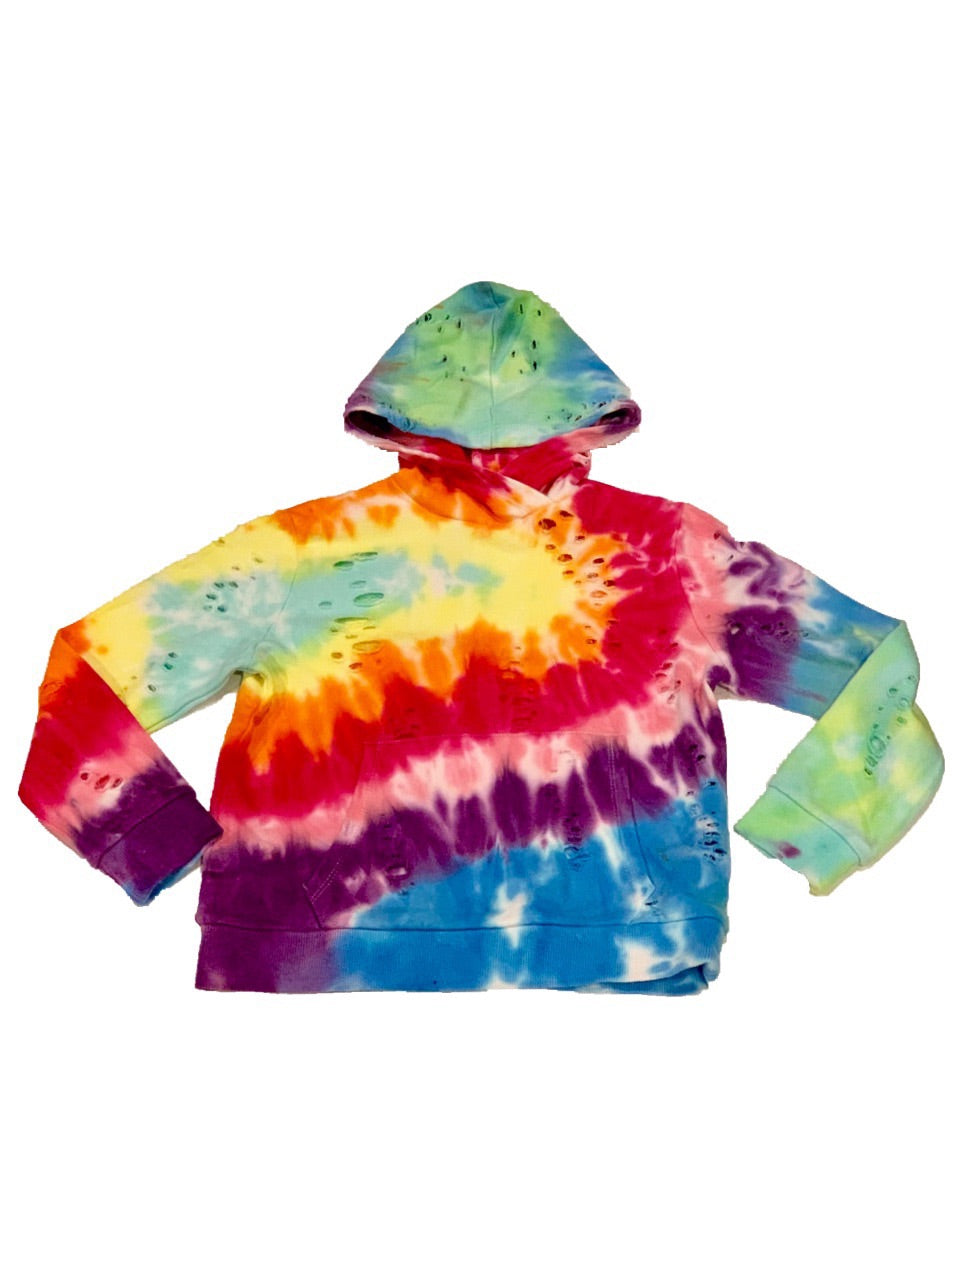 KatieJ Reggie Super Soft Tie Dye Hoodie With Rips